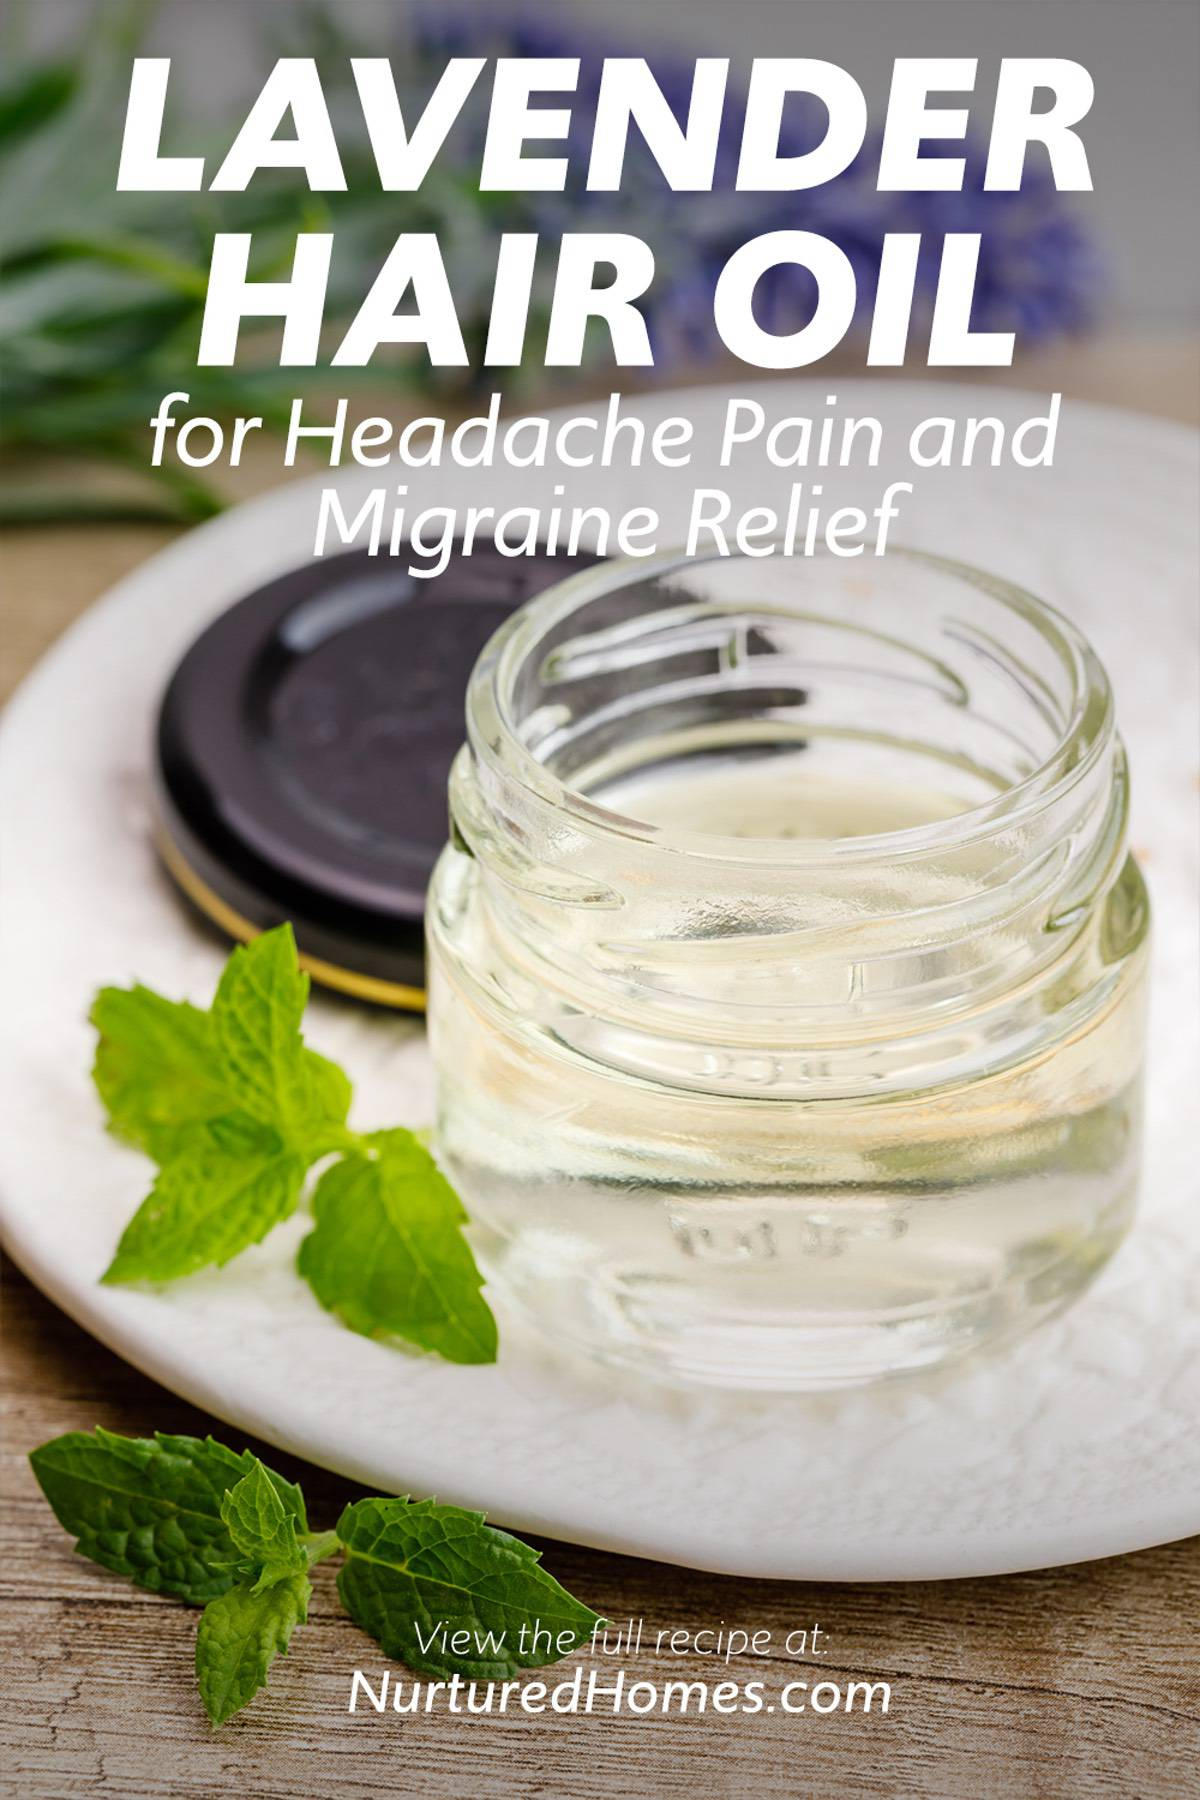 Lavender Hair Oil for Headache Pain and Migraine Relief